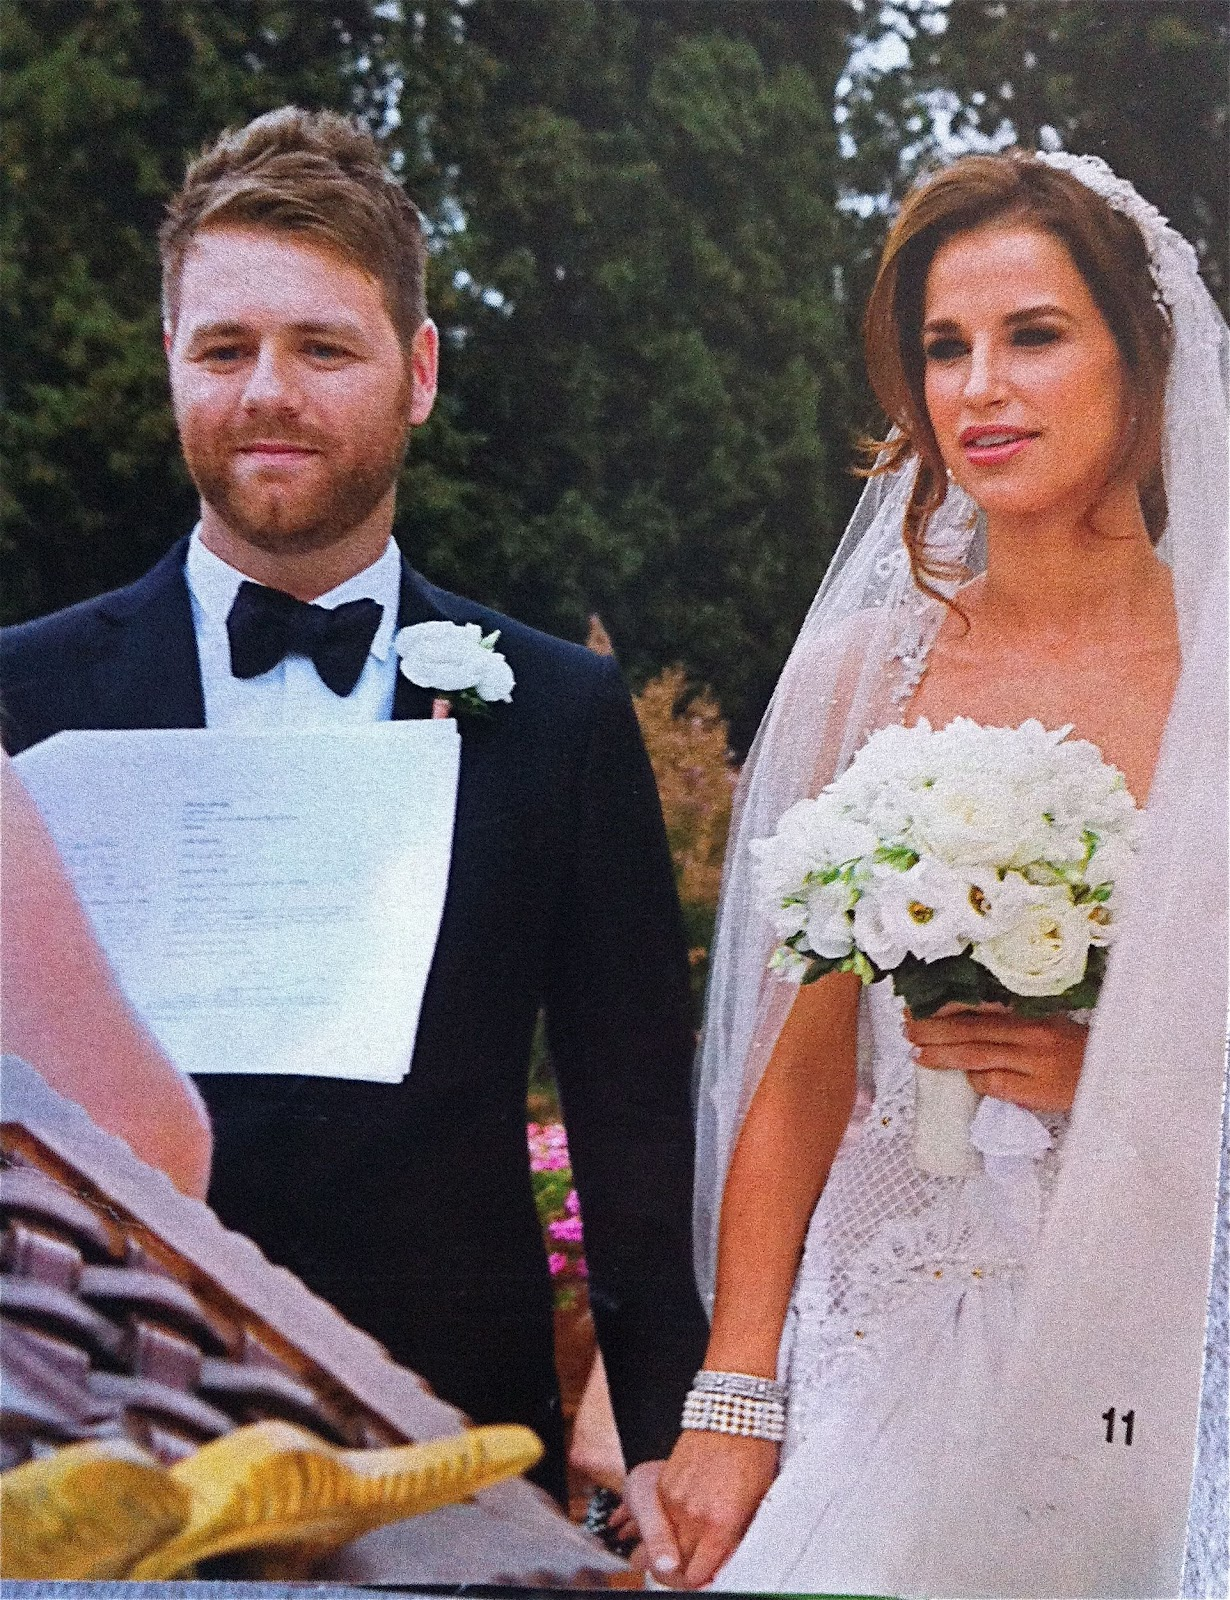 Chasing Rainbows Kissing Frogs Brian Mcfadden Weds Vogue